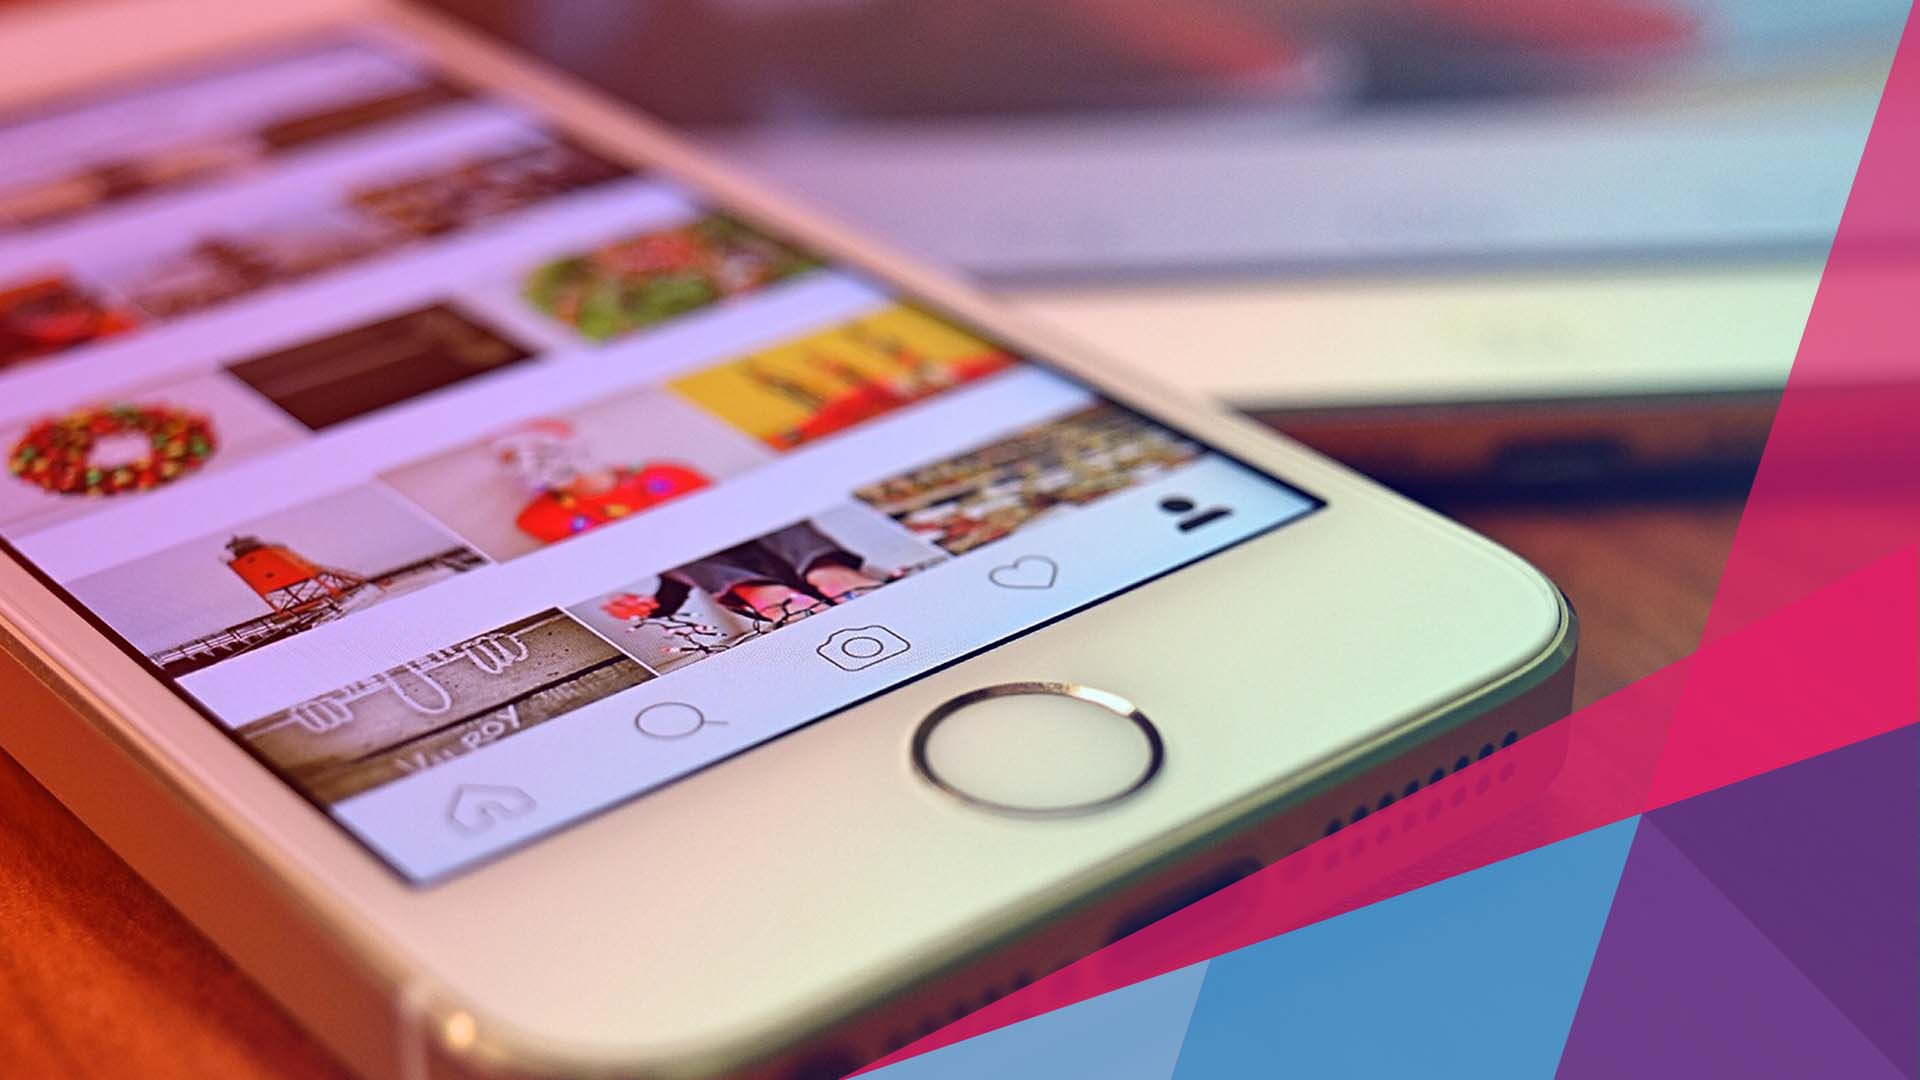 5 Interesting Instagram marketing tips to boost your brand